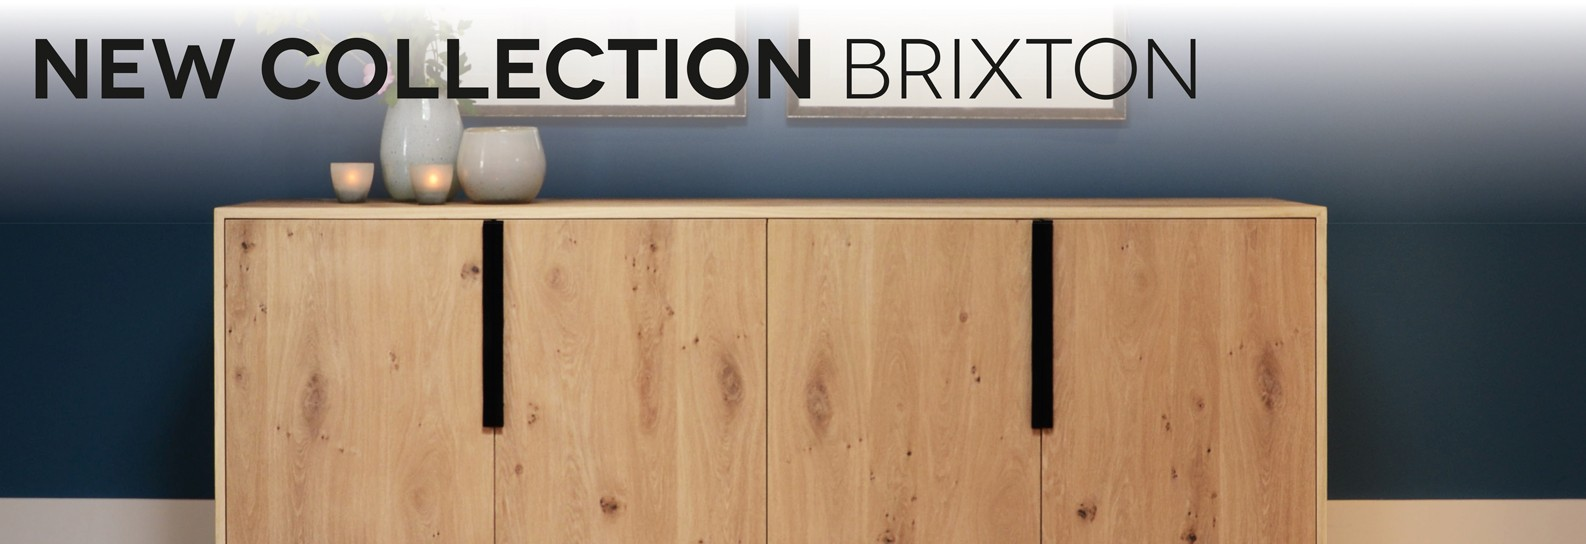 New collection Brixton